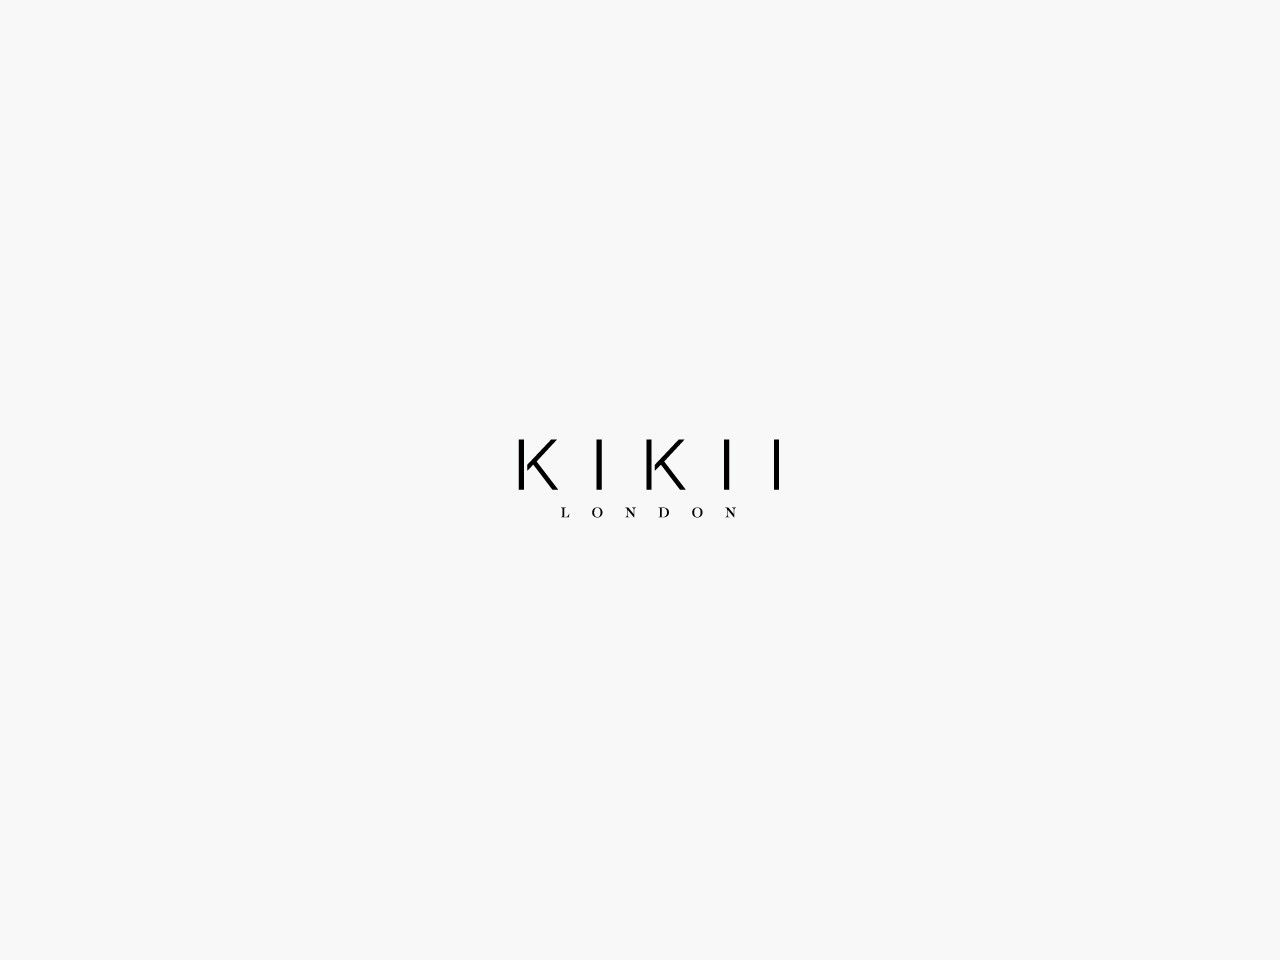 Design a logo for Kikii London - a playful take on luxury footwear